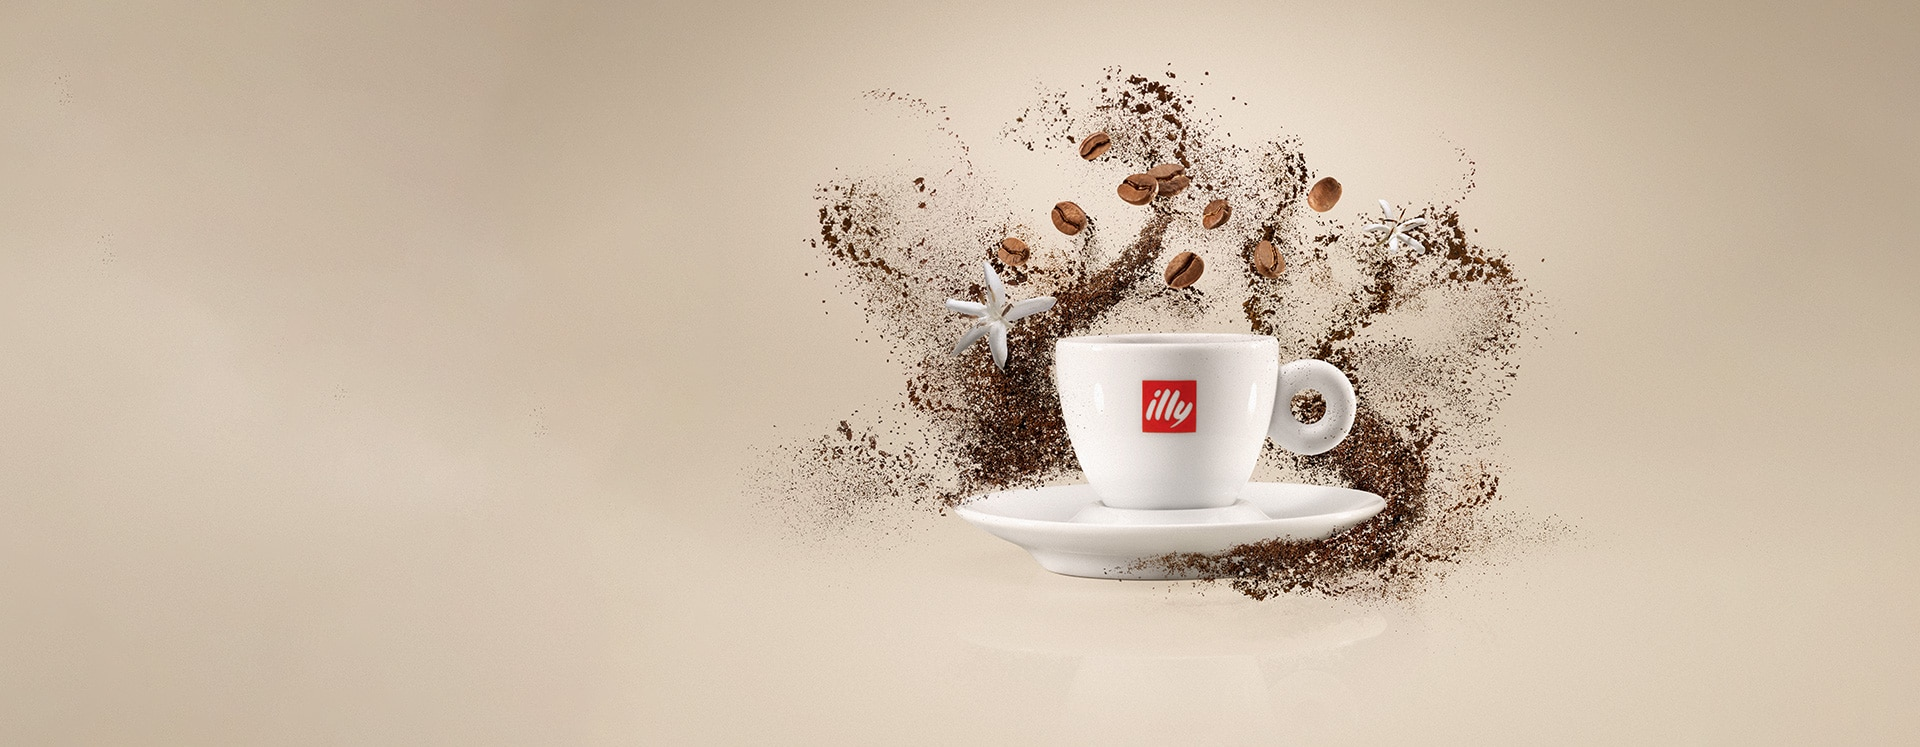 blend illy